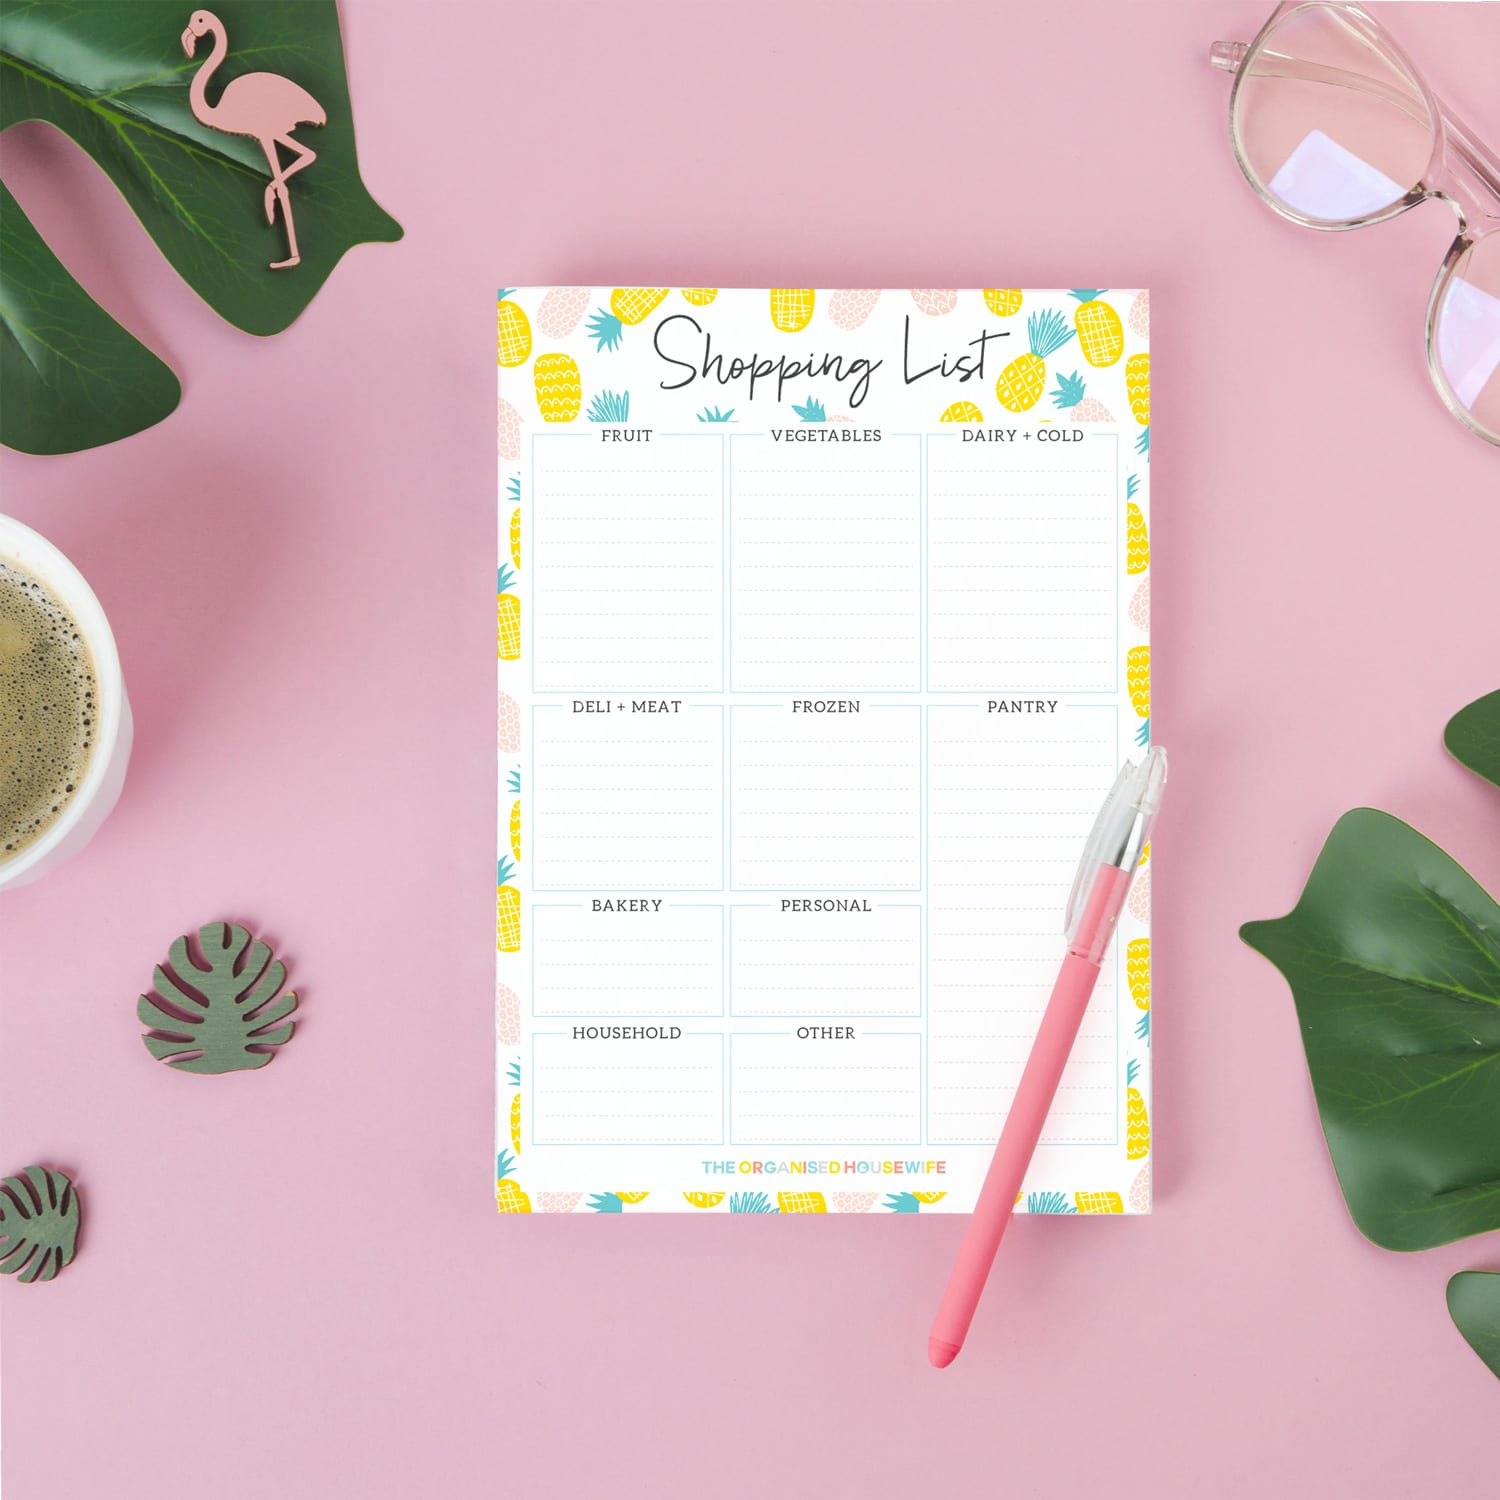 Pineapple shopping list notepad for meal planning